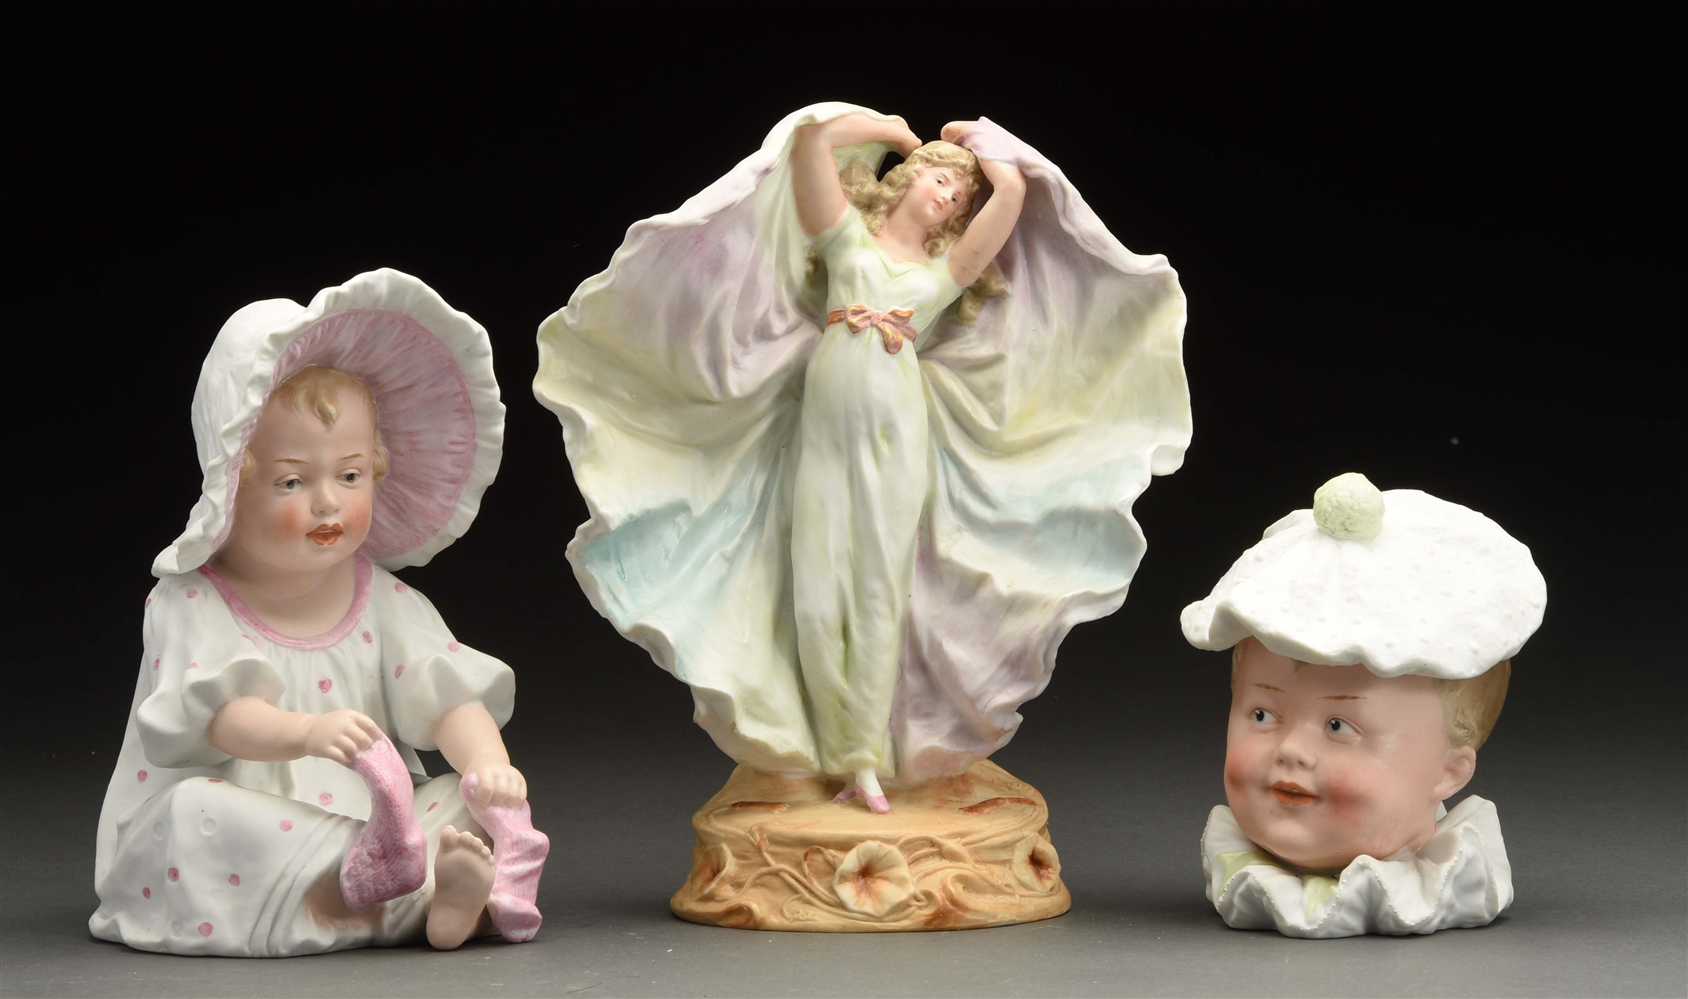 Lot of 3: Very Nice Heubach Figures.